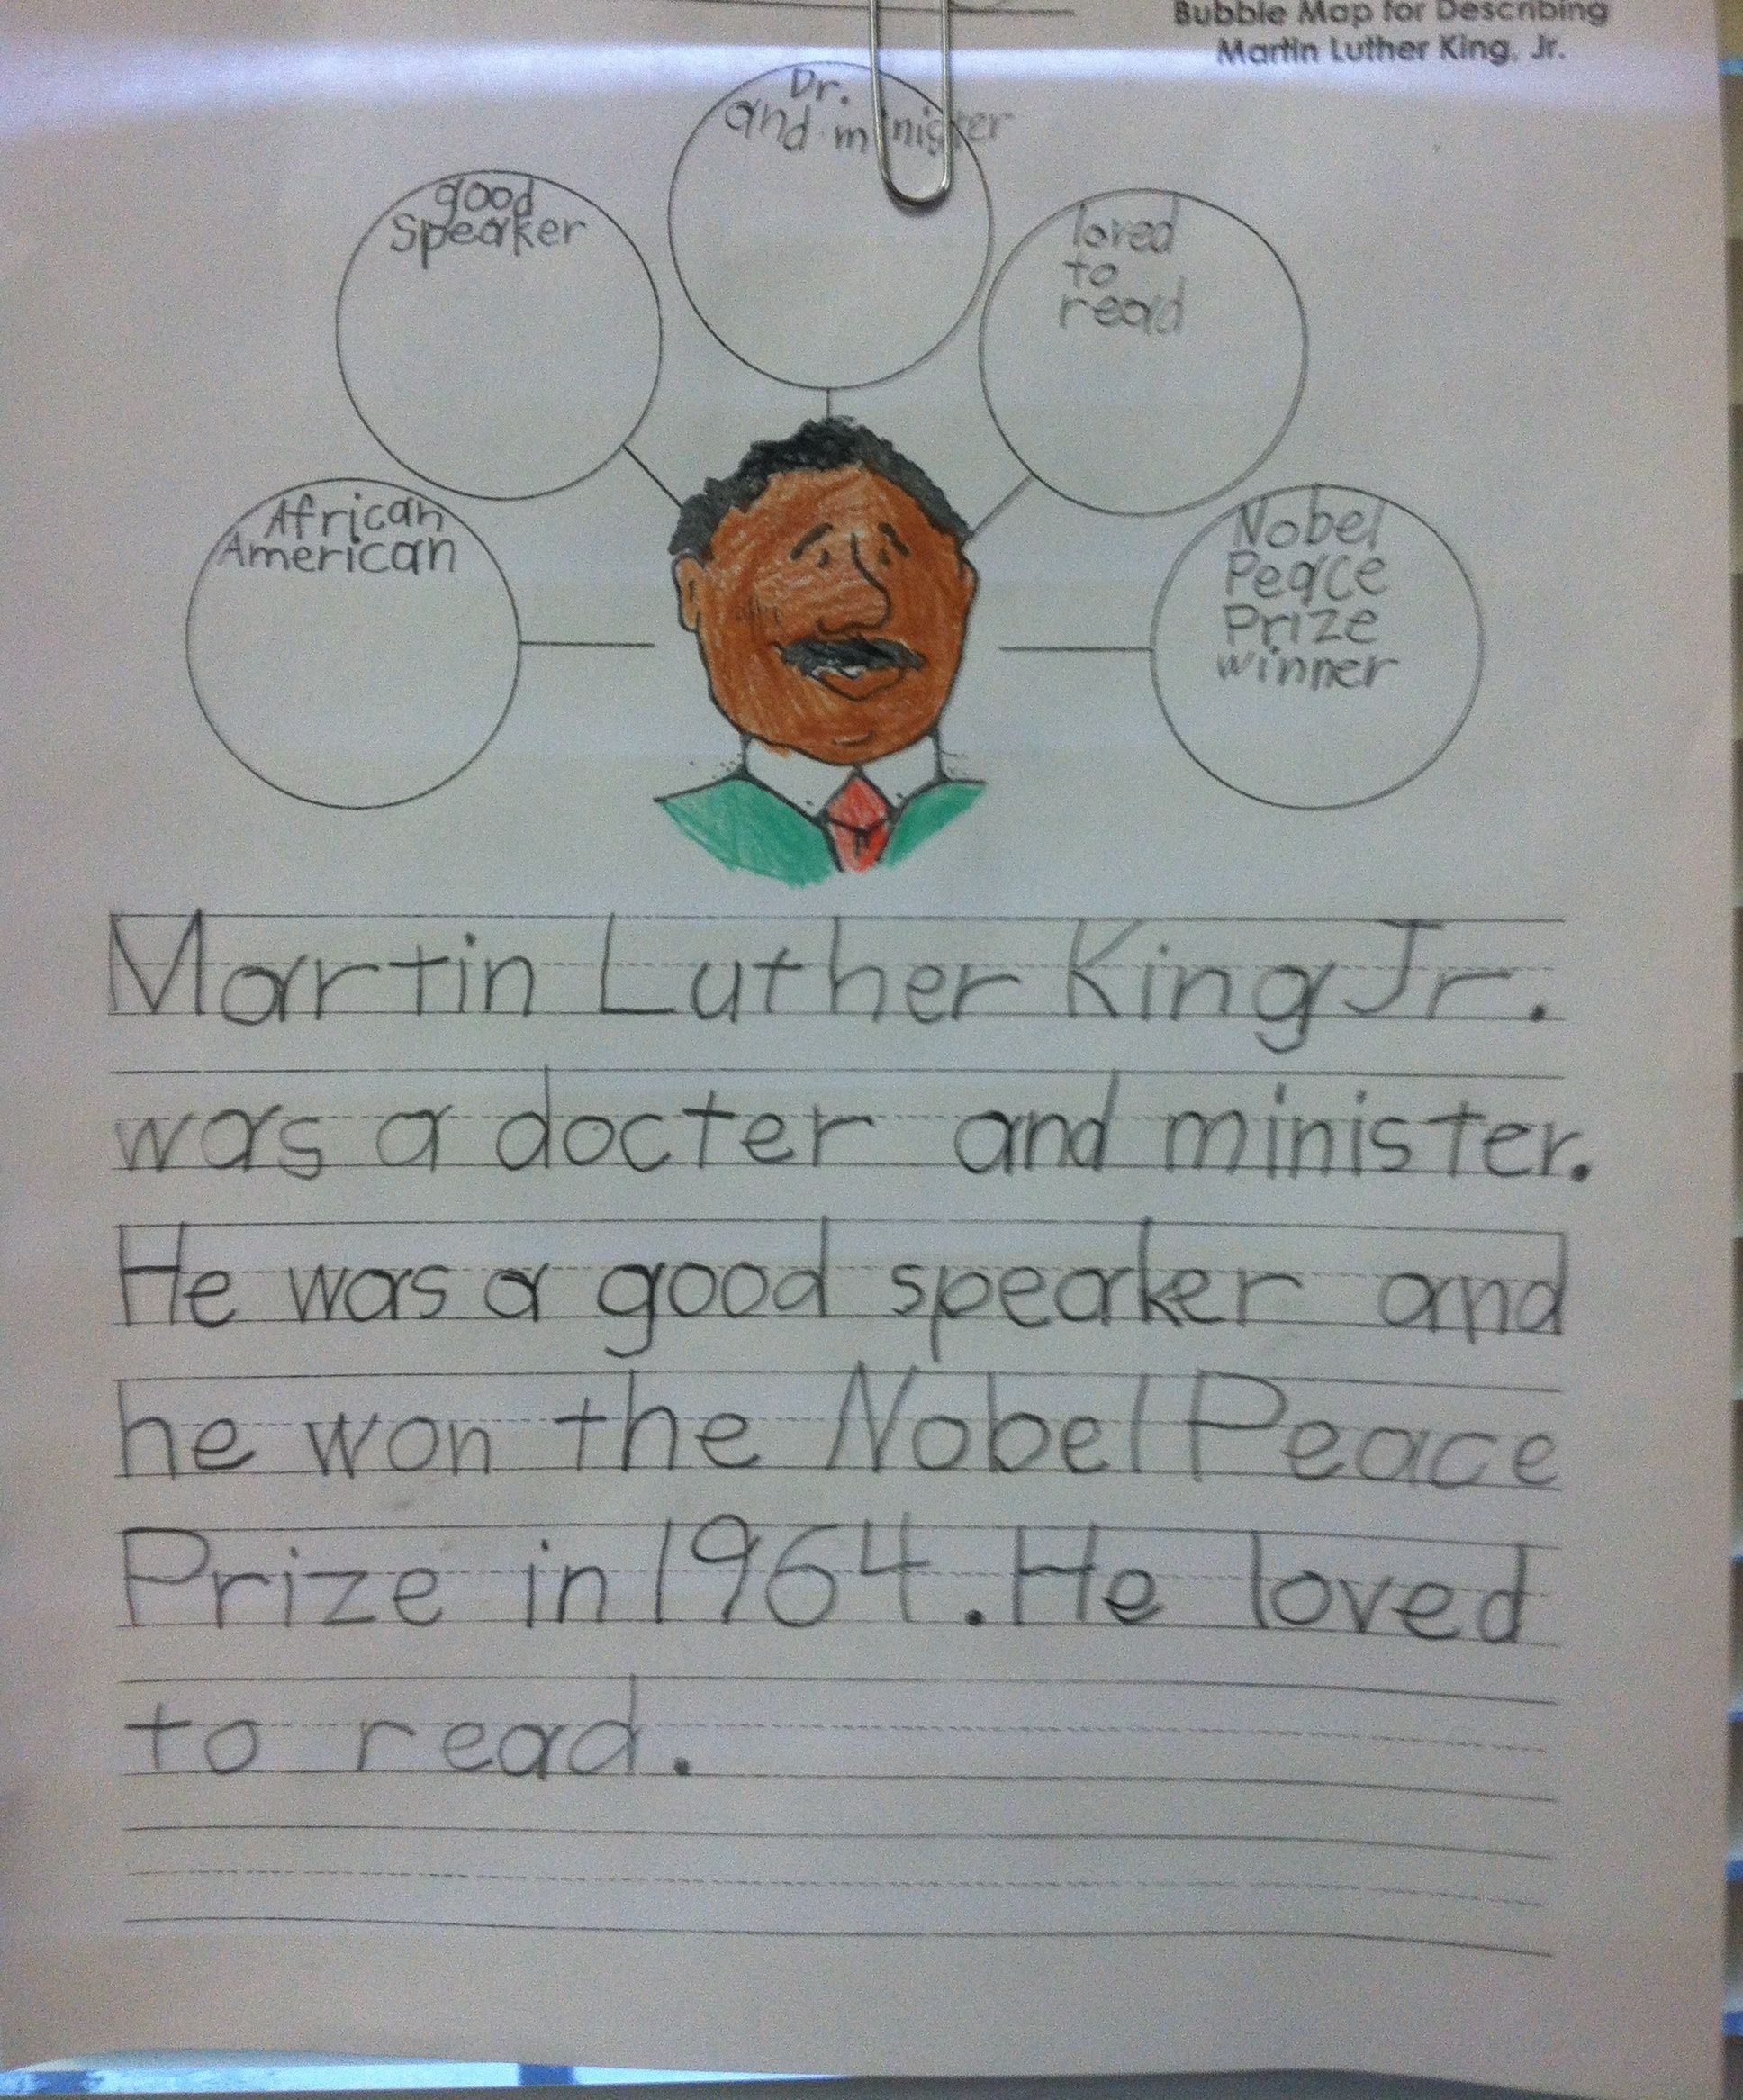 Bubble Map For Describing Mlk Jr